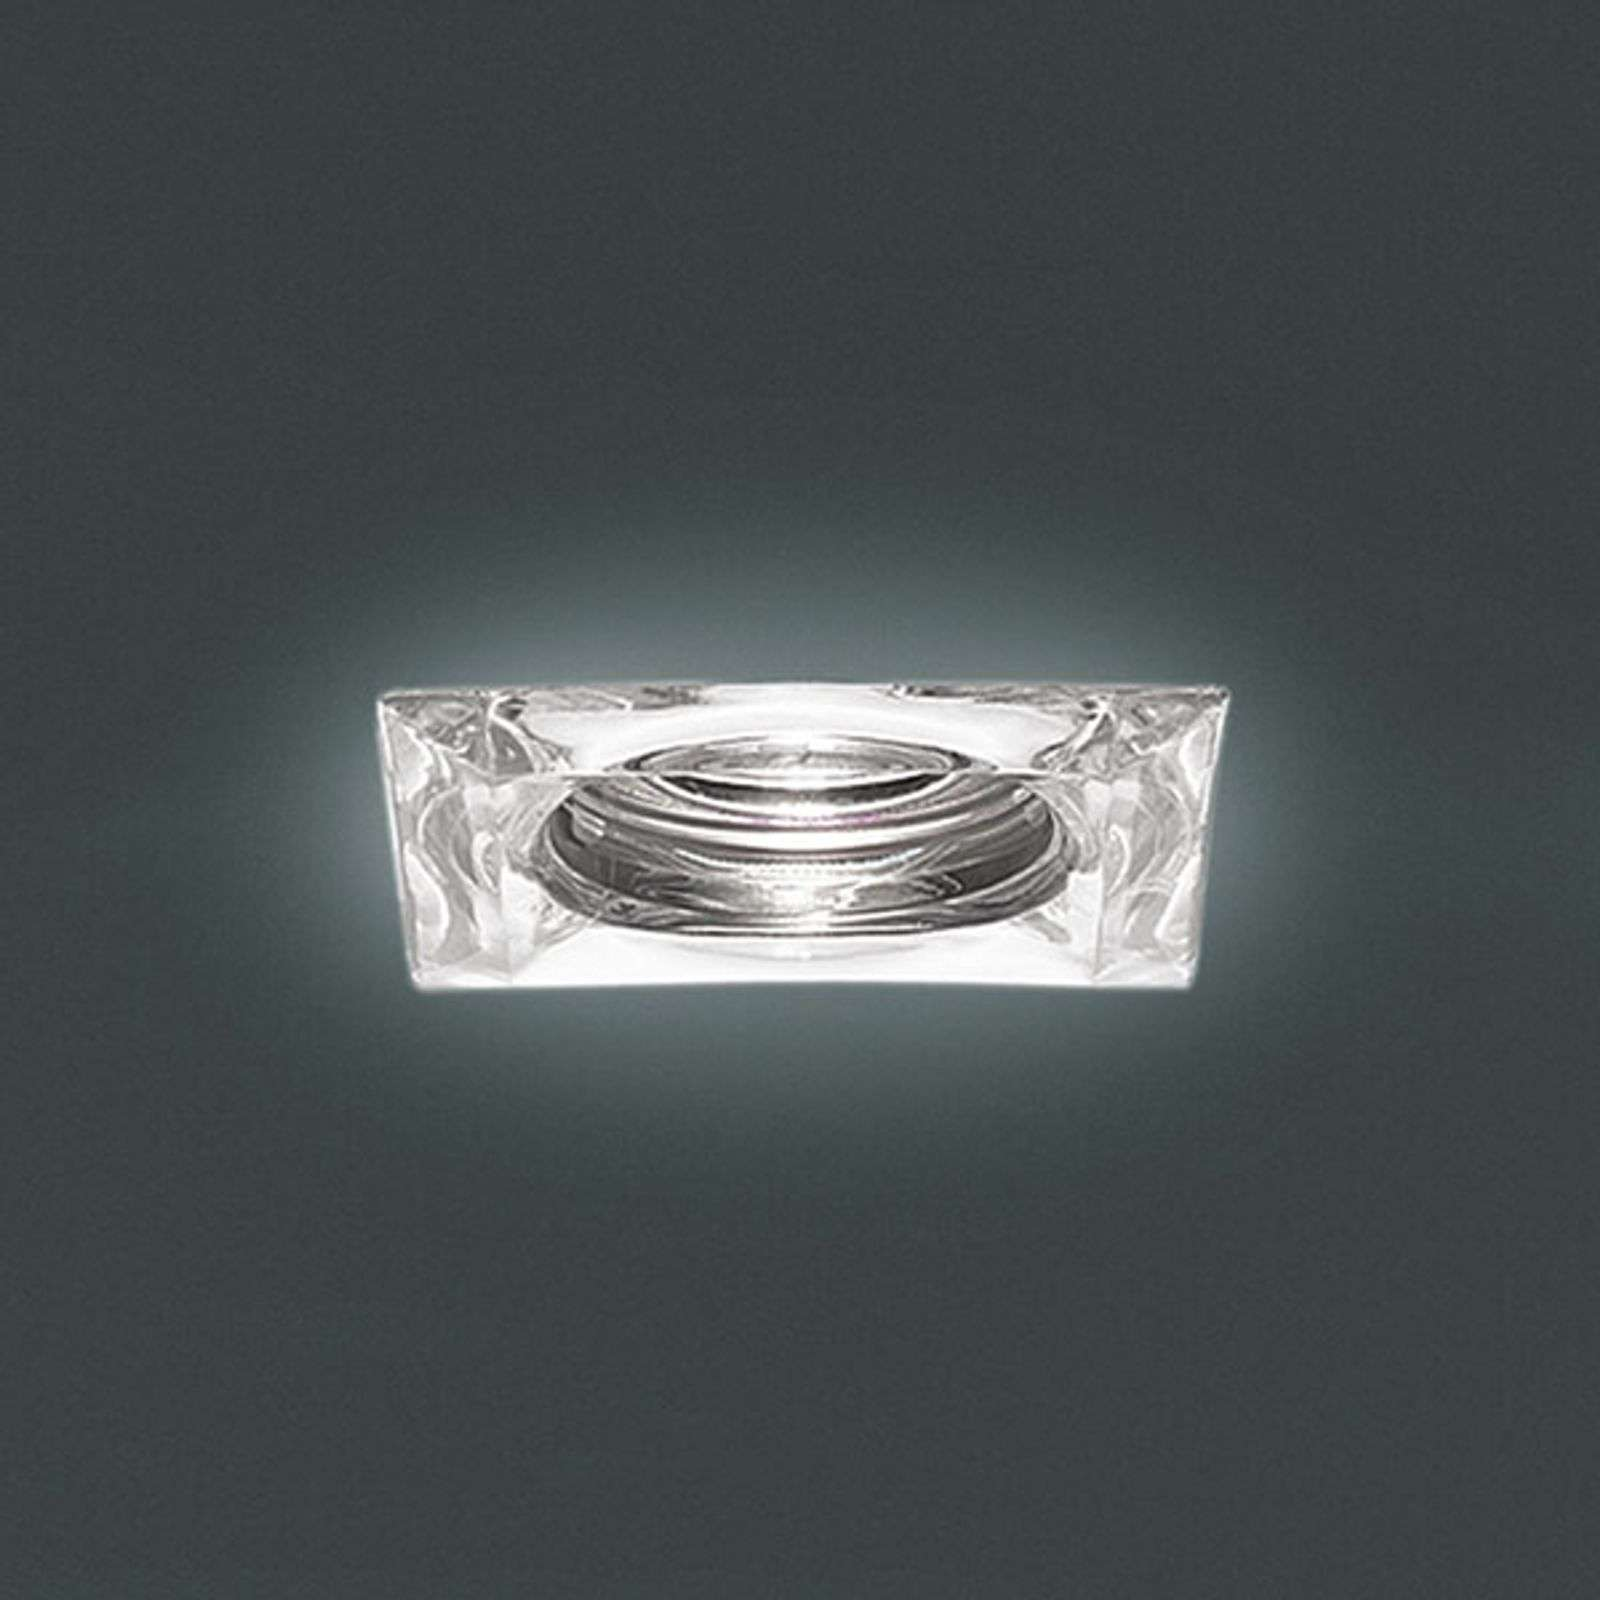 Mira 2 - clear recessed light in angular shape